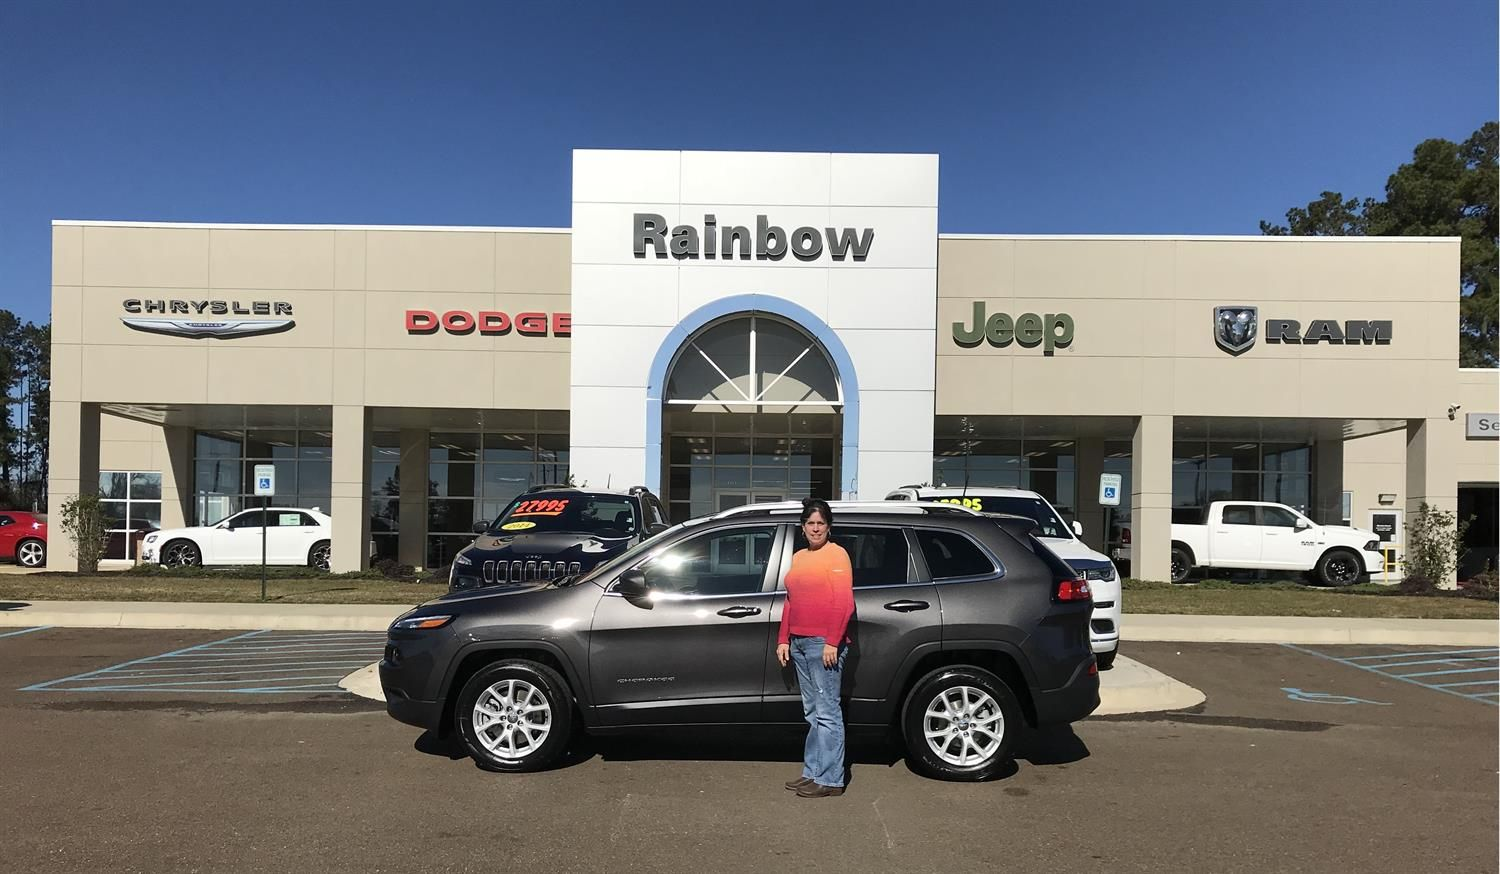 High Quality Congratulations To James On Your New 2018 JEEP CHEROKEE! Thank You Again, · Chrysler  Dodge ...